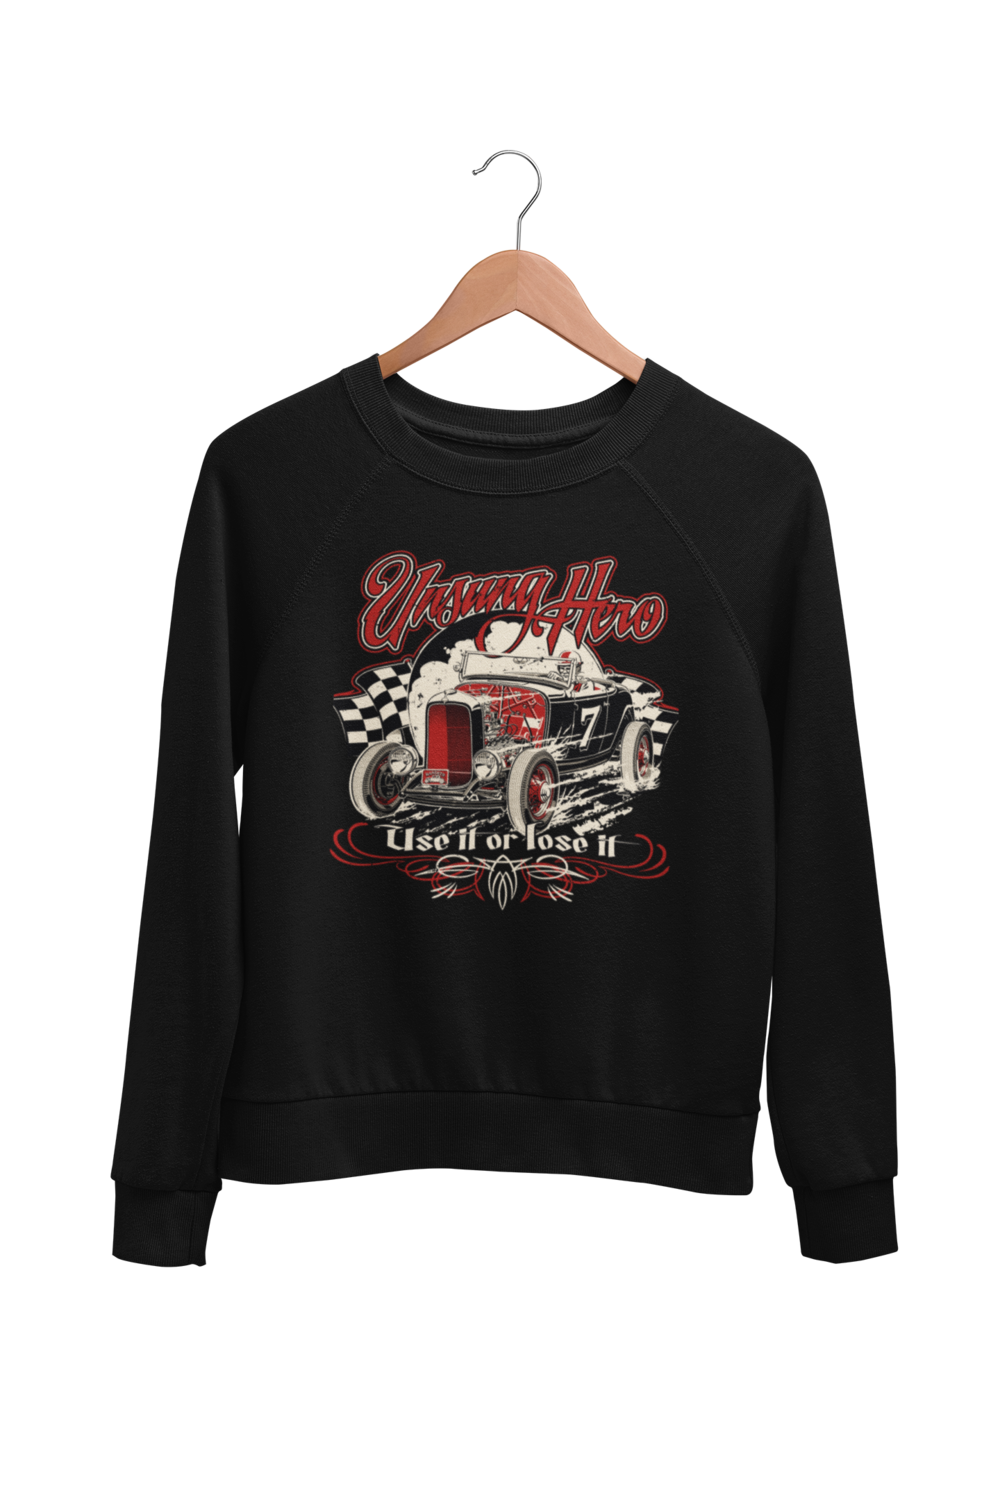 "UNSUNG HERO ""Use it or lose it"" SWEATSHIRT UNISEX by BY Ger ""Dutch Courage"" Peters artwork"